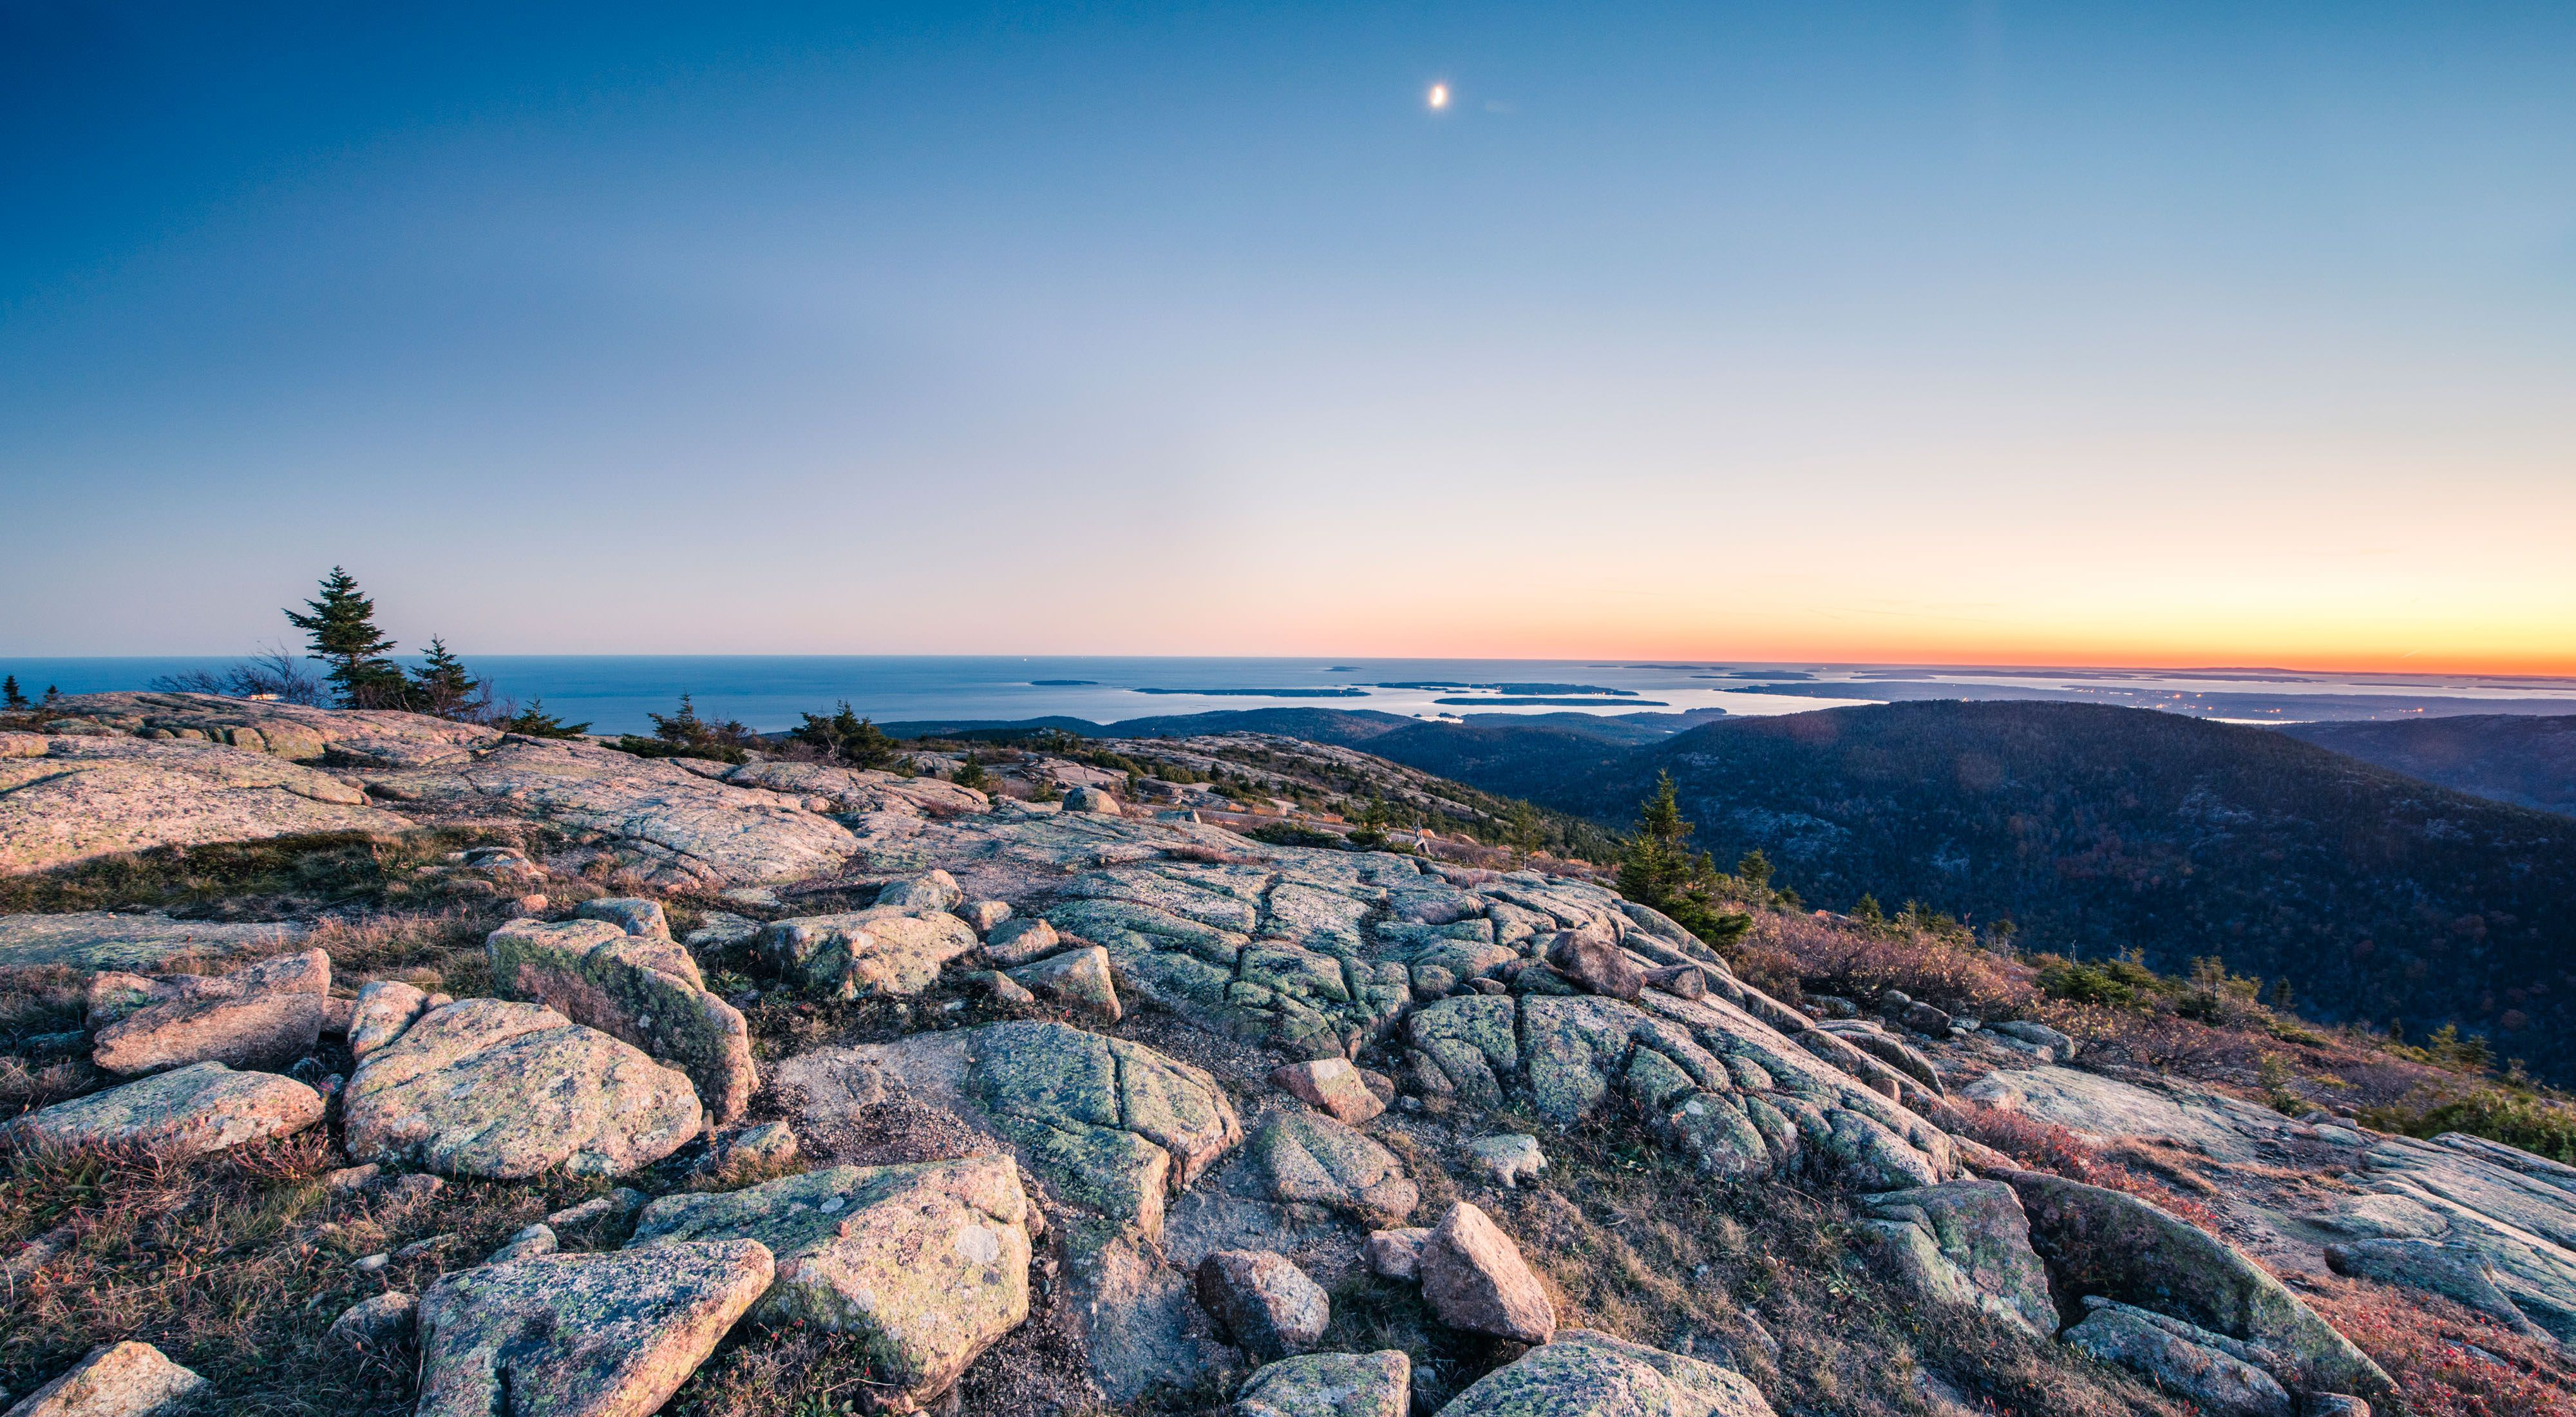 Sunset from the top of Cadillac Mountain